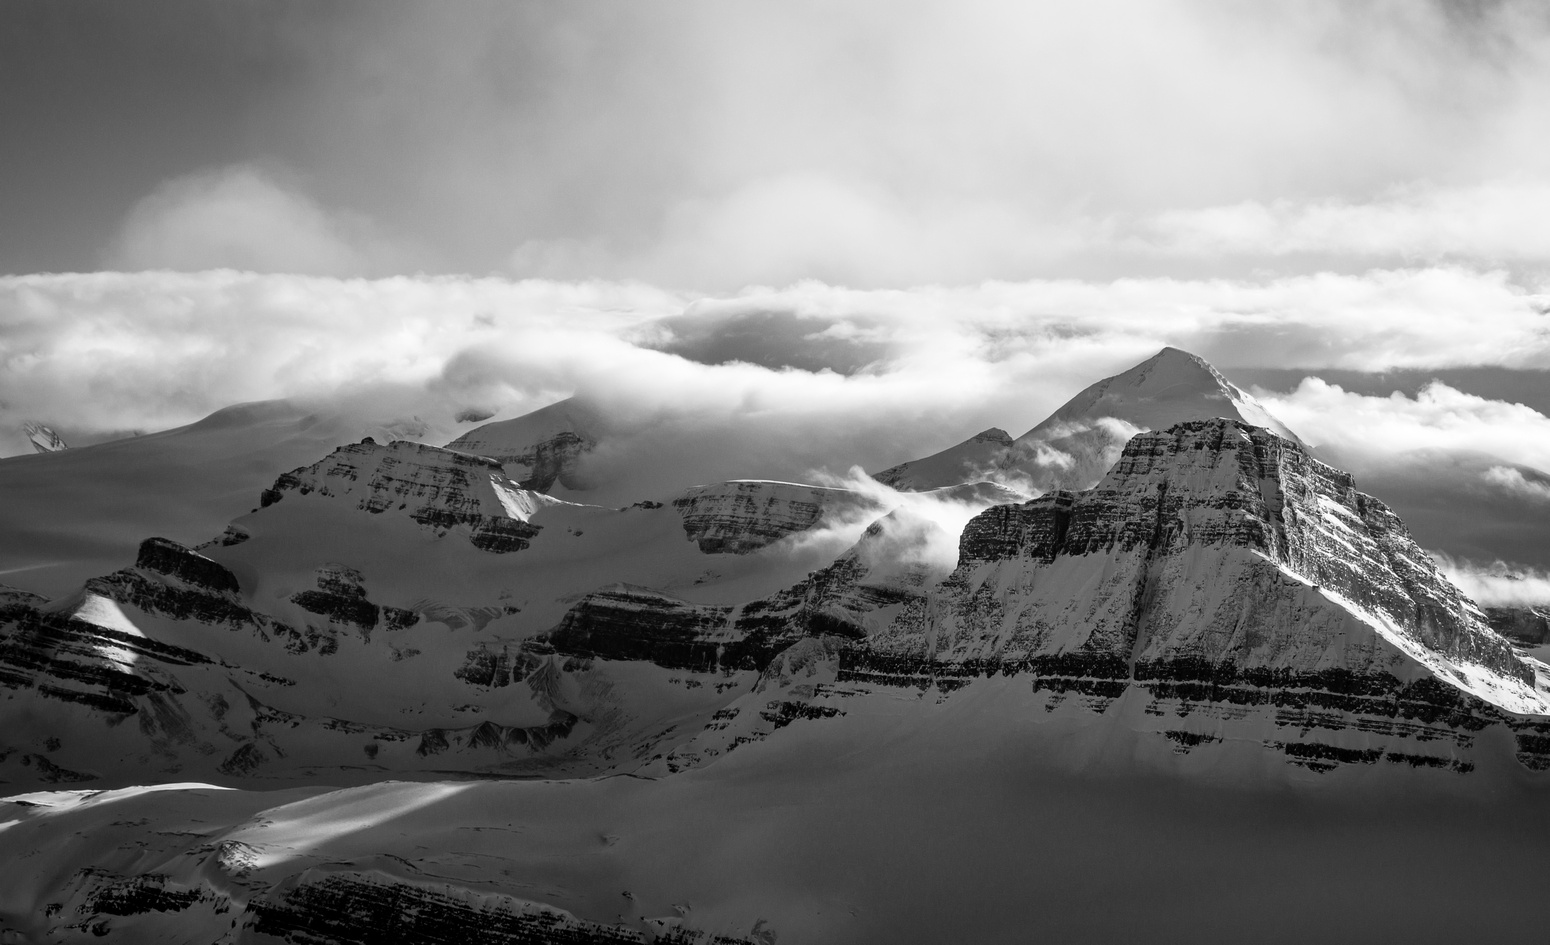 Looking over Peyto (L) and Mistaya (R) towards the towering Mount Baker.